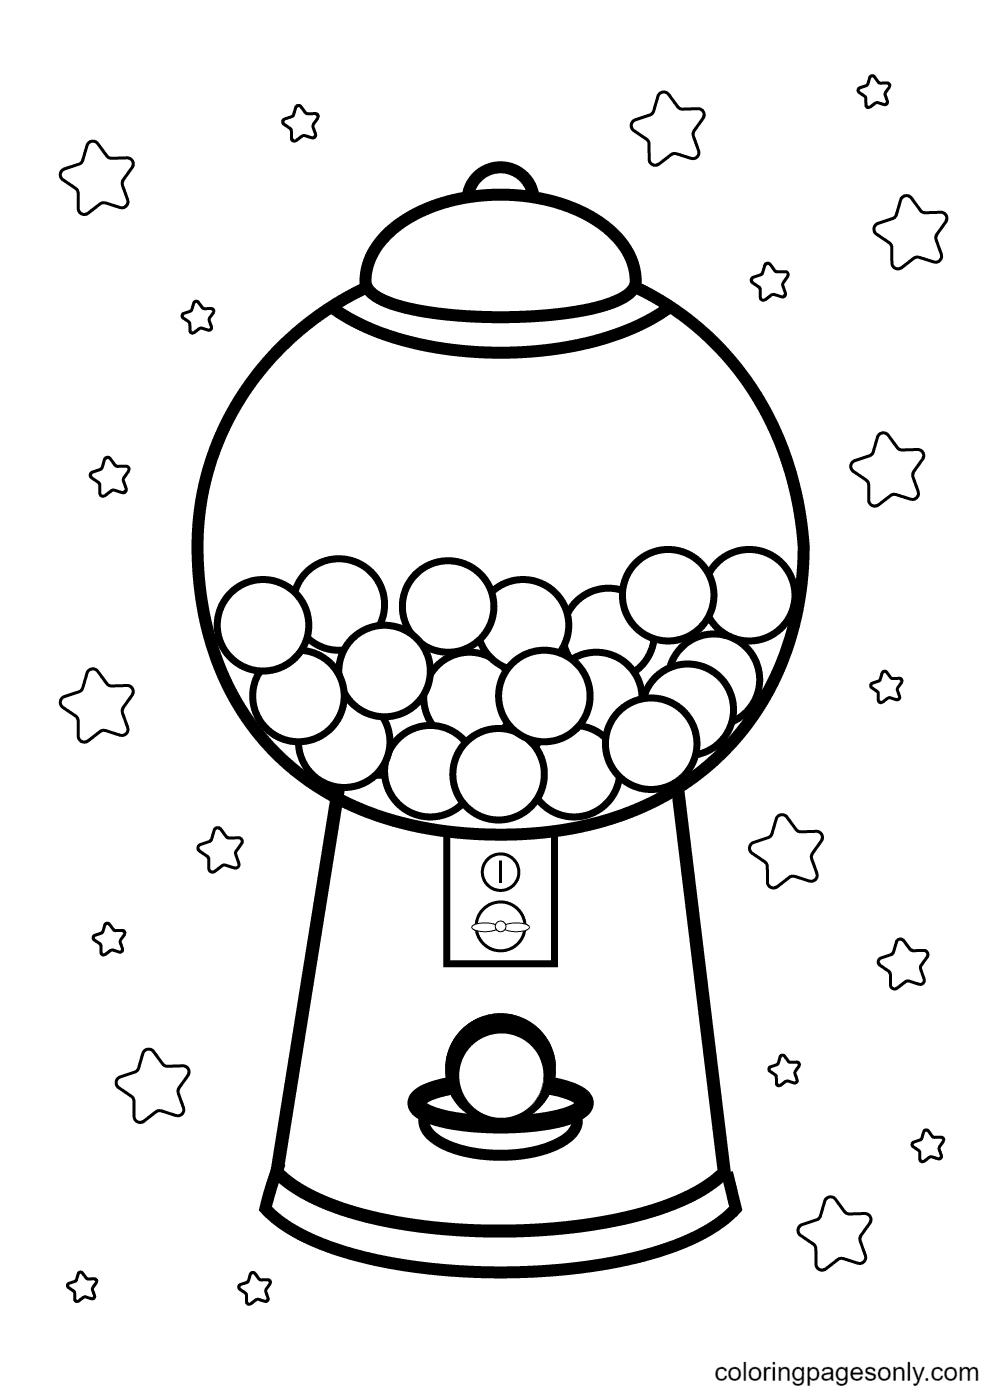 A Gumball Machine Candy Coloring Page